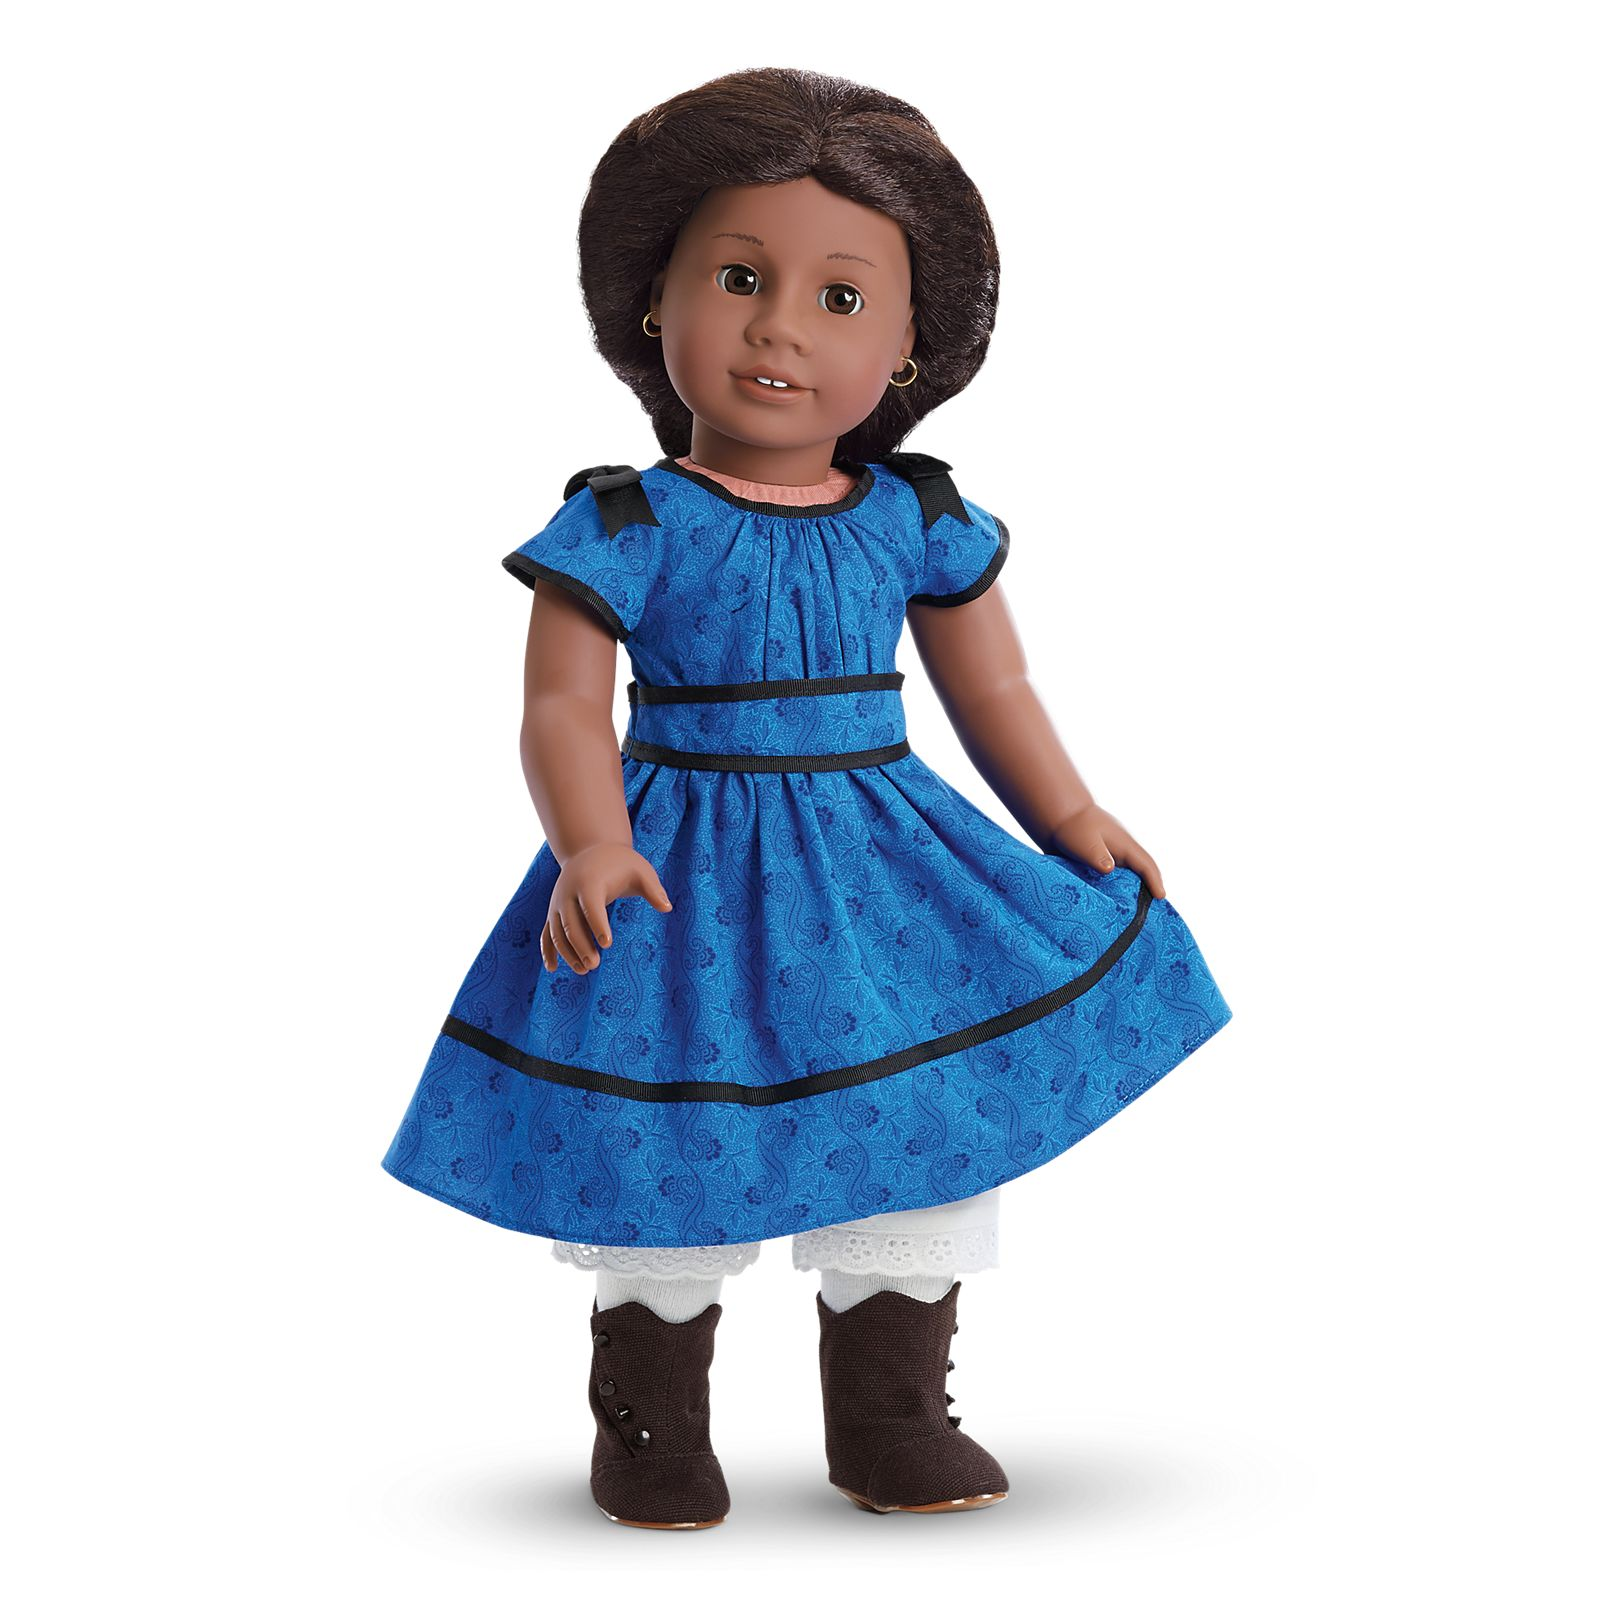 Fit For 18/'/' American Girl Meet Outfit Handmade Gift Doll Accessories Blue Socks